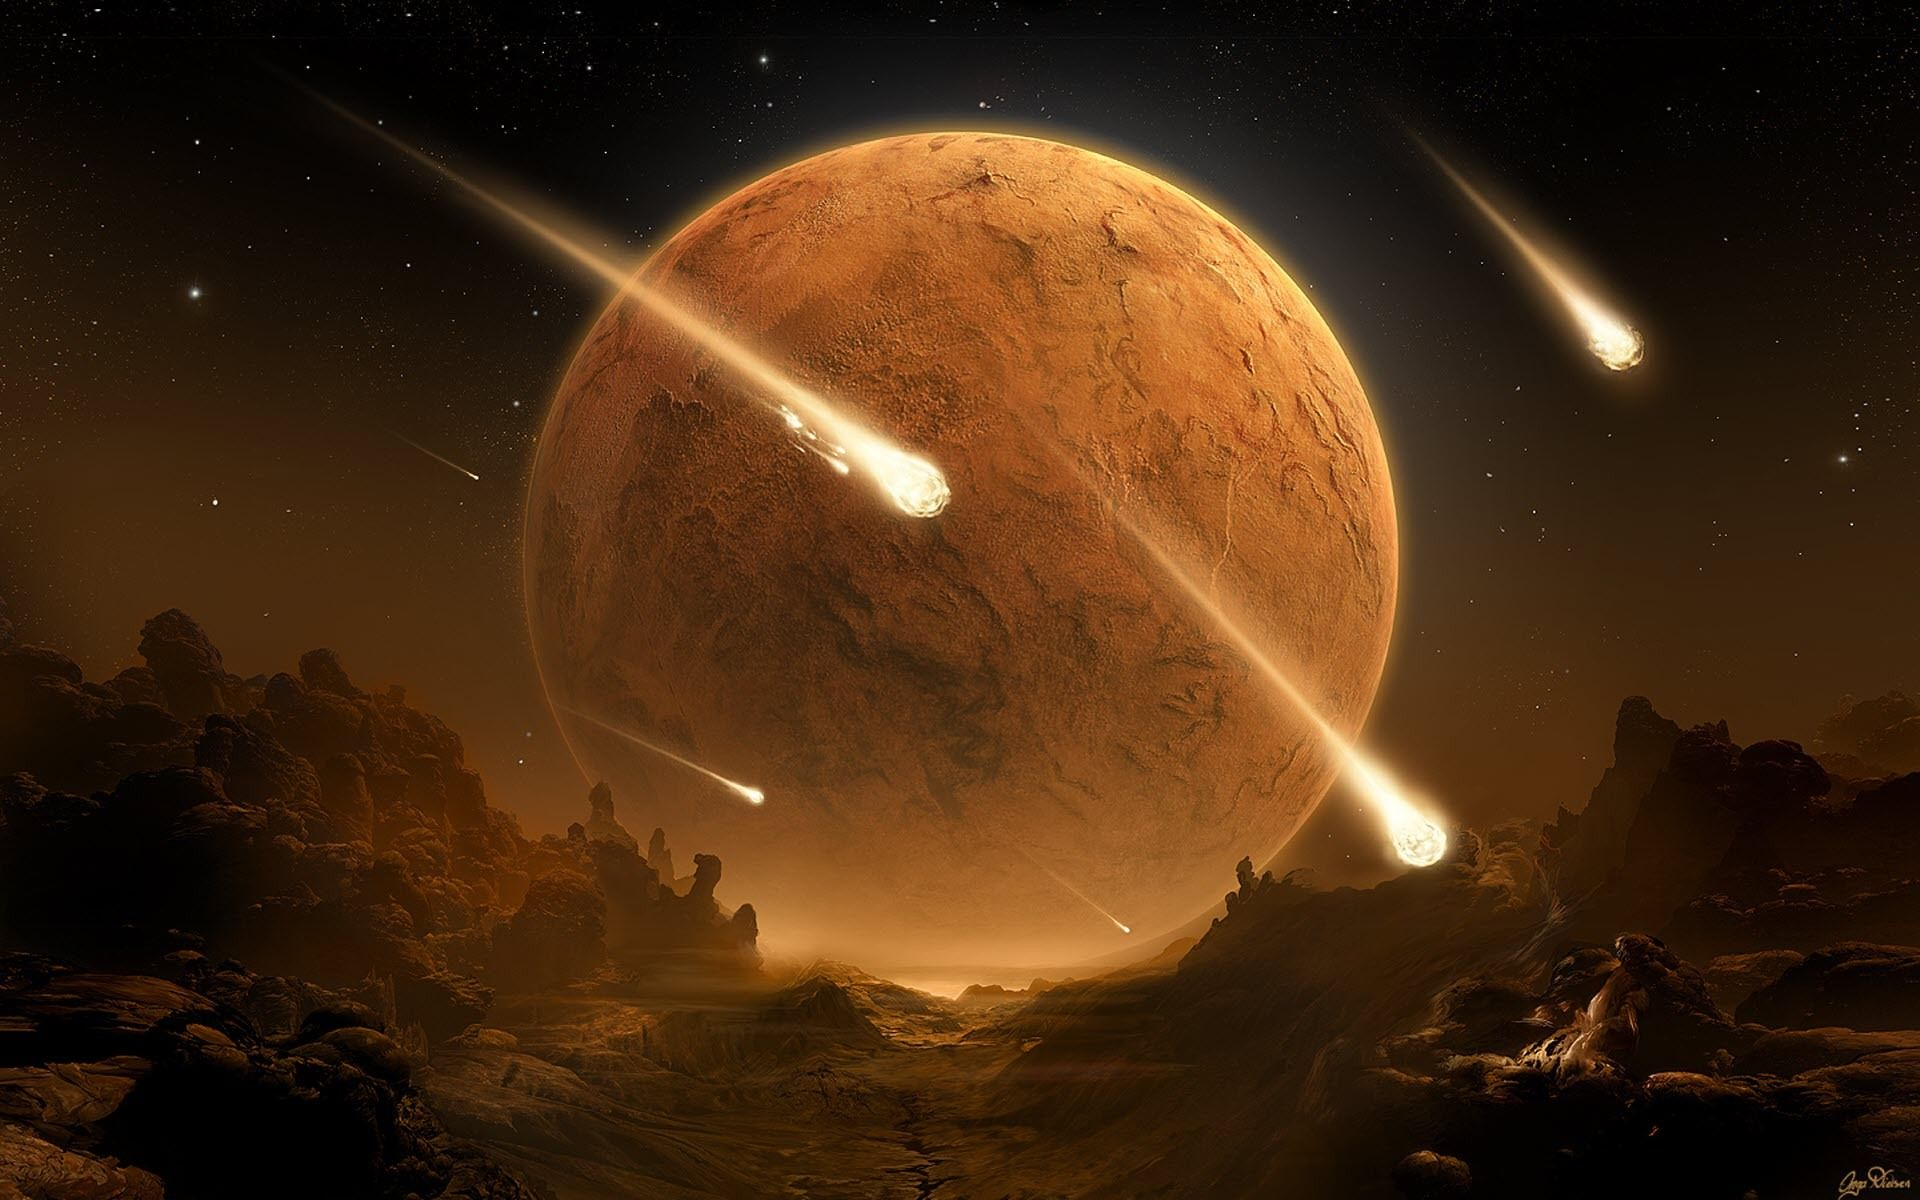 Meteorite Wallpapers HD Backgrounds, Image, Pics, Photos Free